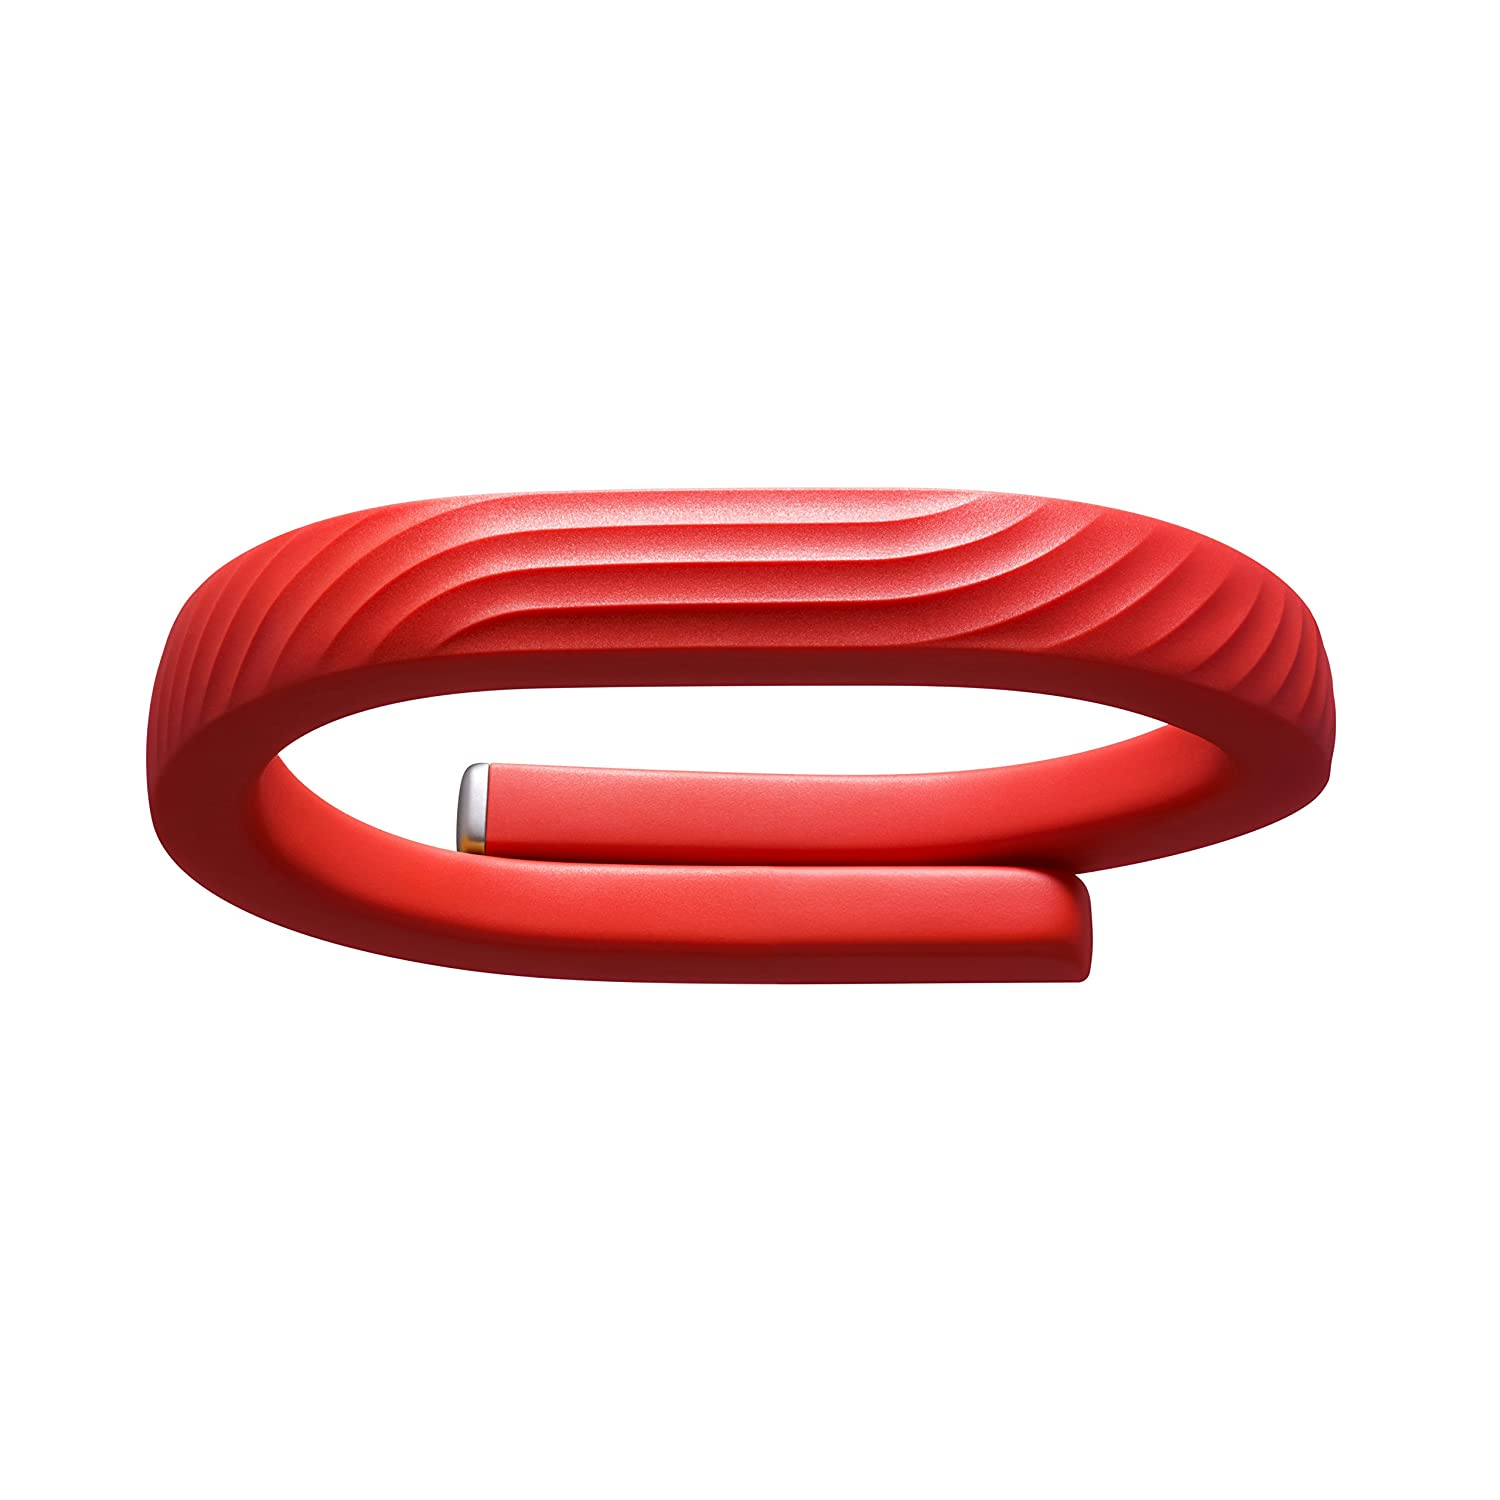 Jawbone Activity Tracker Discontinued Manufacturer Image 3